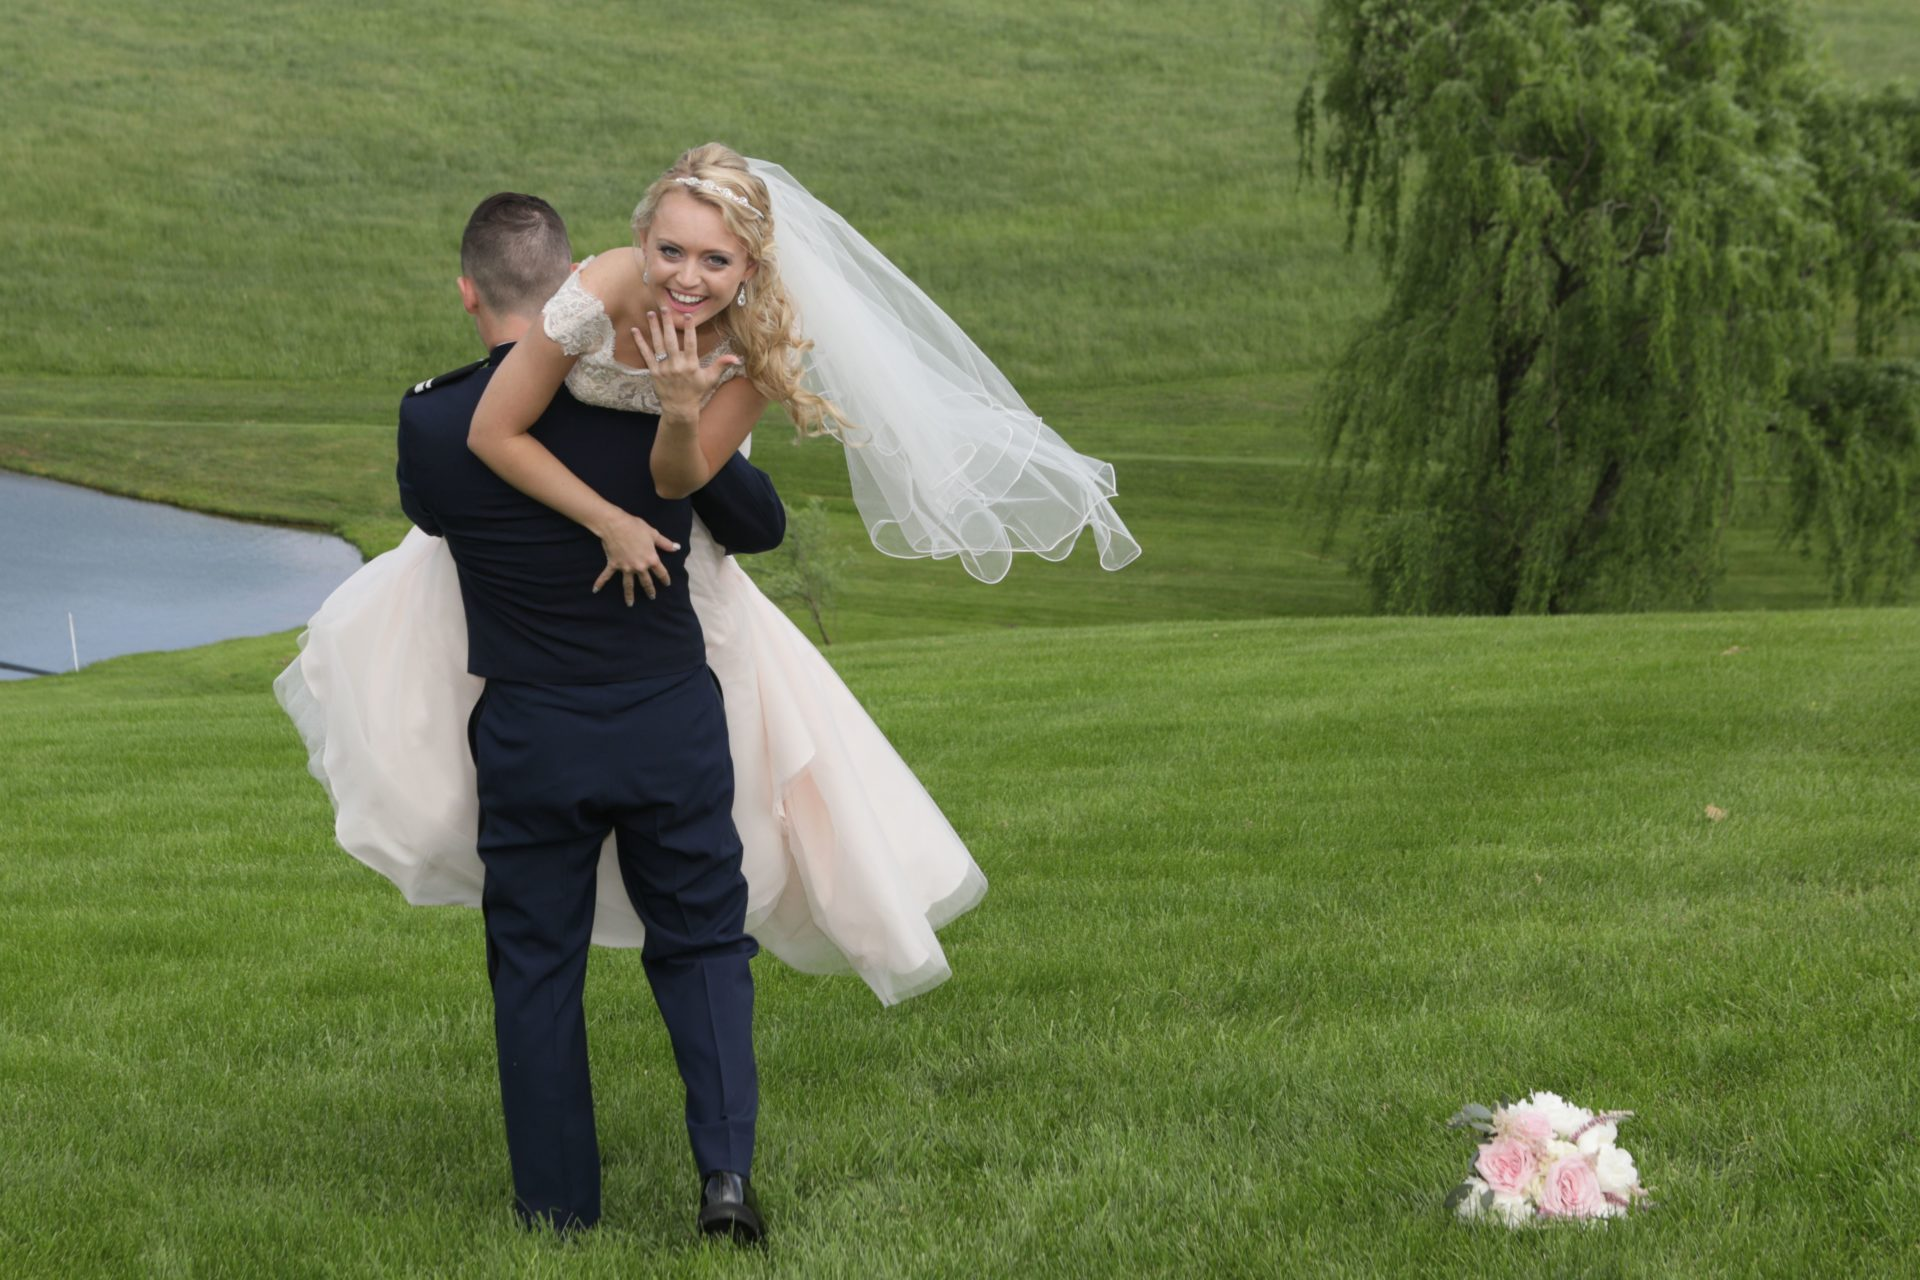 Groom carries bride away on back lawn at Morningside Inn wedding venue